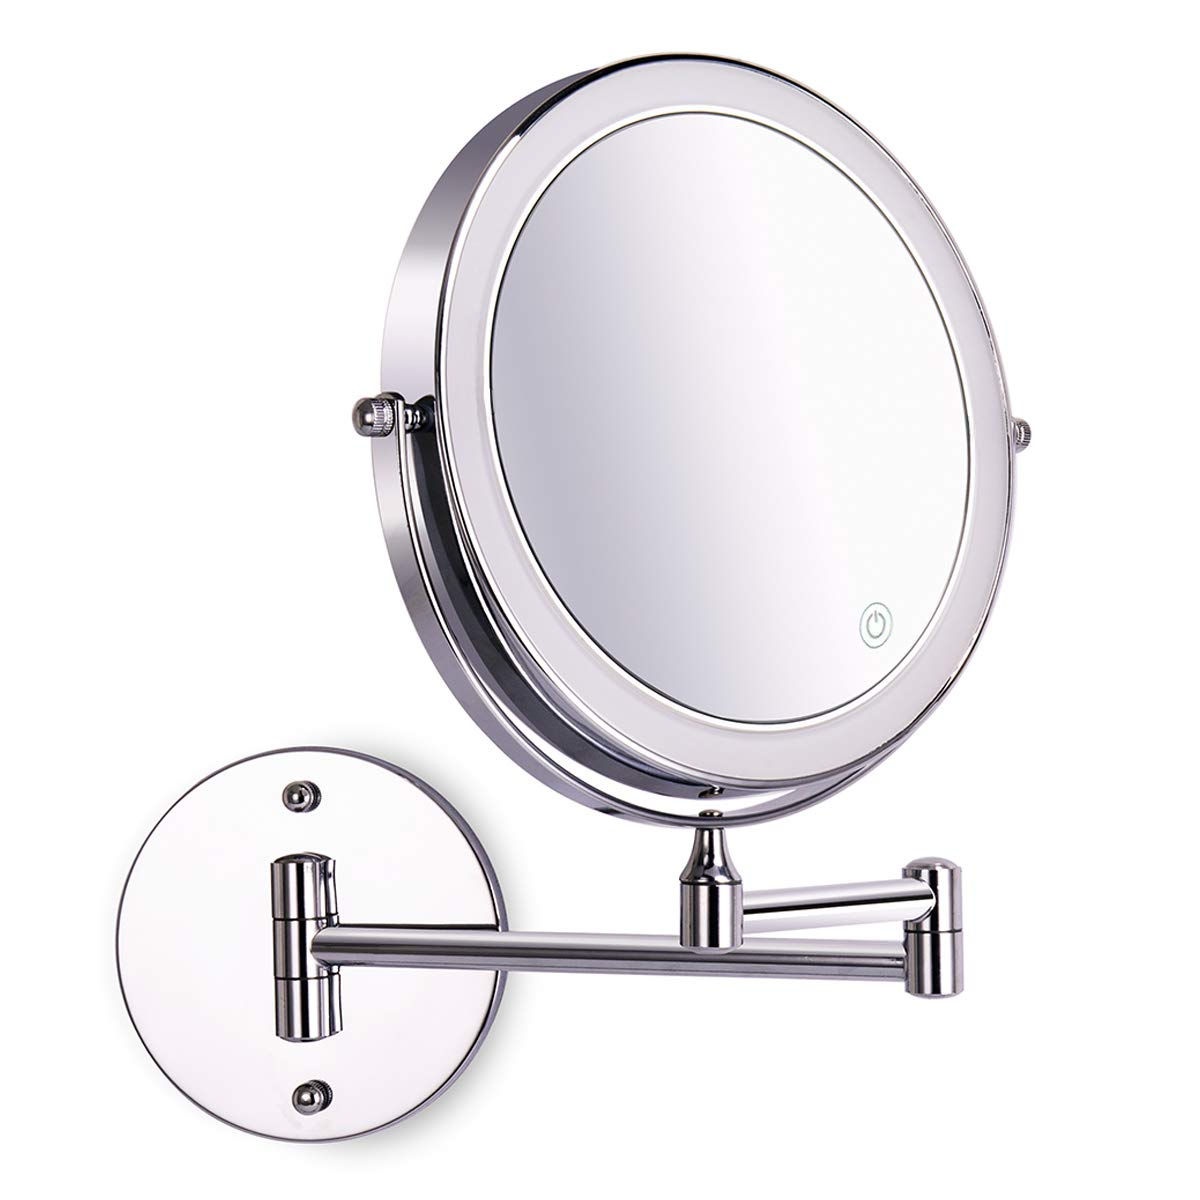 8 Inch Wall Mounted Makeup Mirror Adjustable LED Light Touch Screen 1X 10X Magnifying Two Sided 360 Swivel Extendable Vanity Mirror